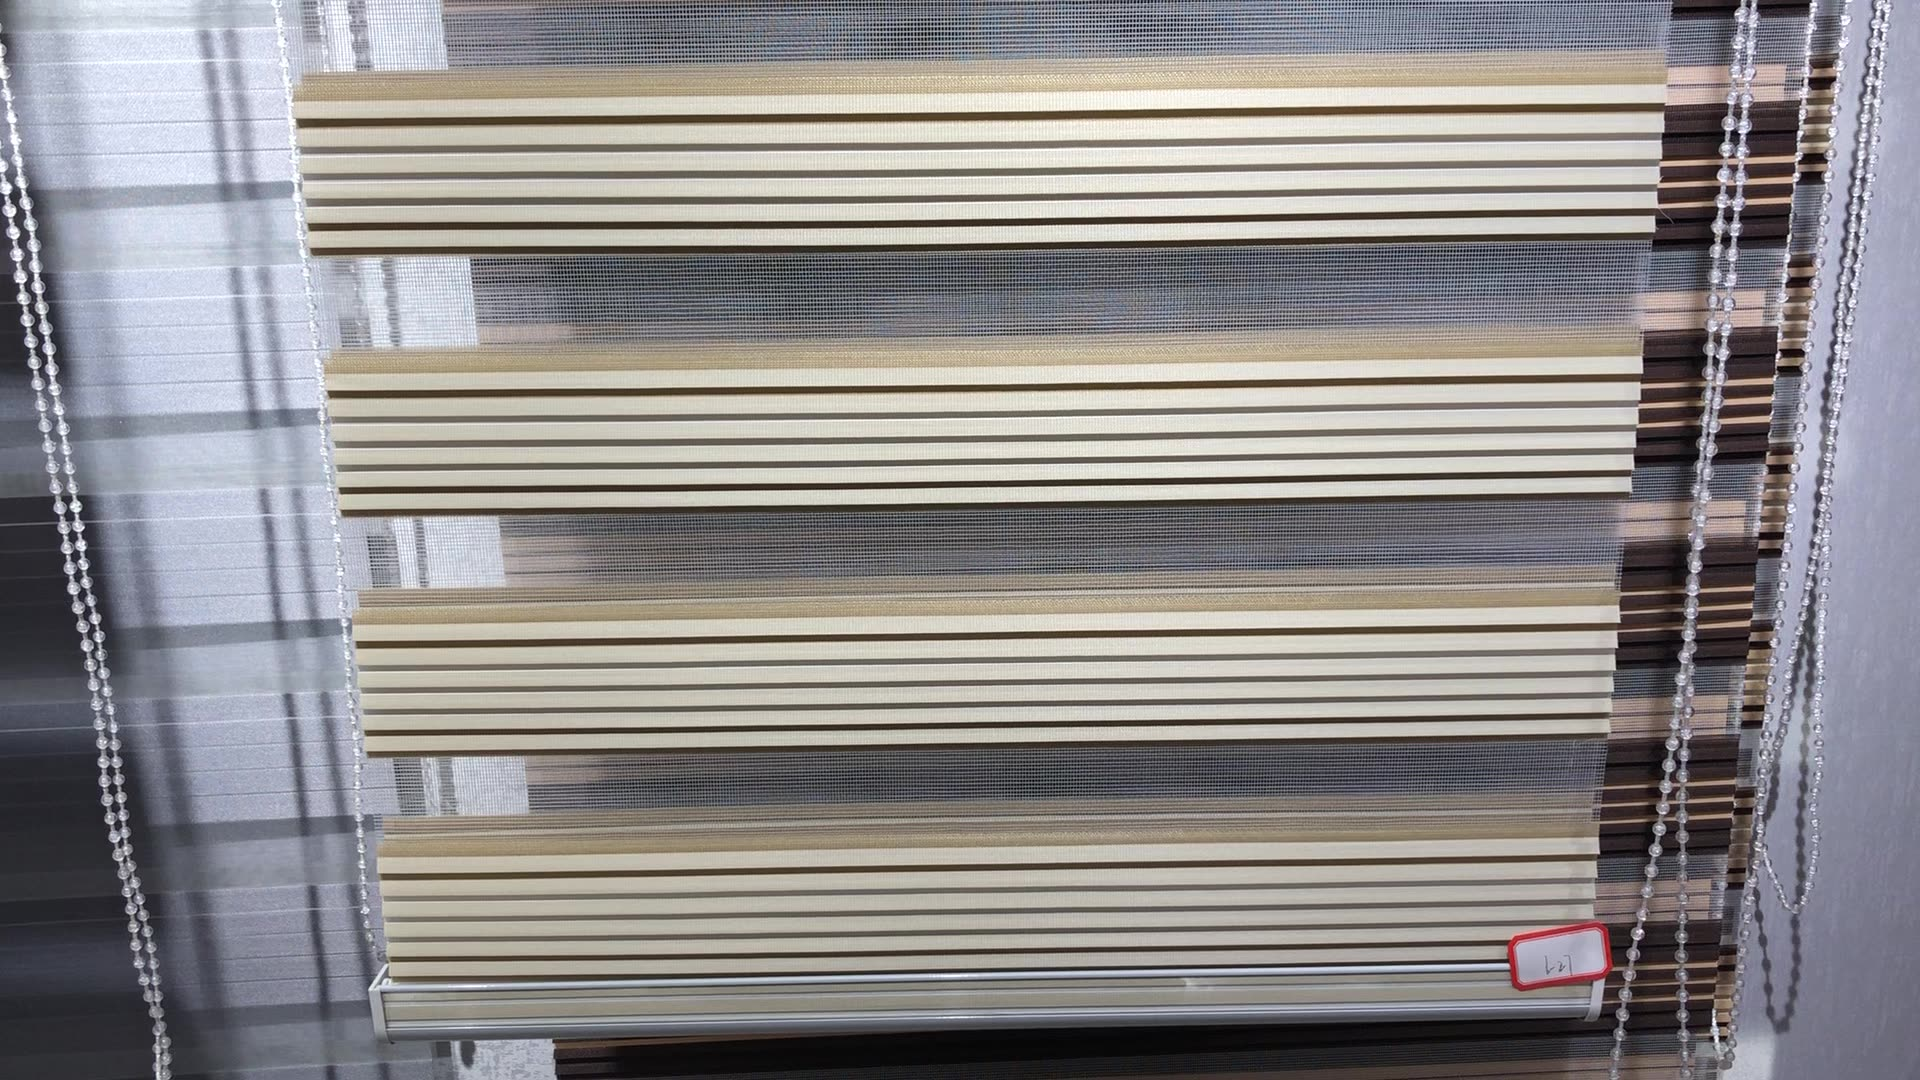 Good Quality 100% Polyester Fabric Zebra Ready-Made Window Blinds For Office Decor